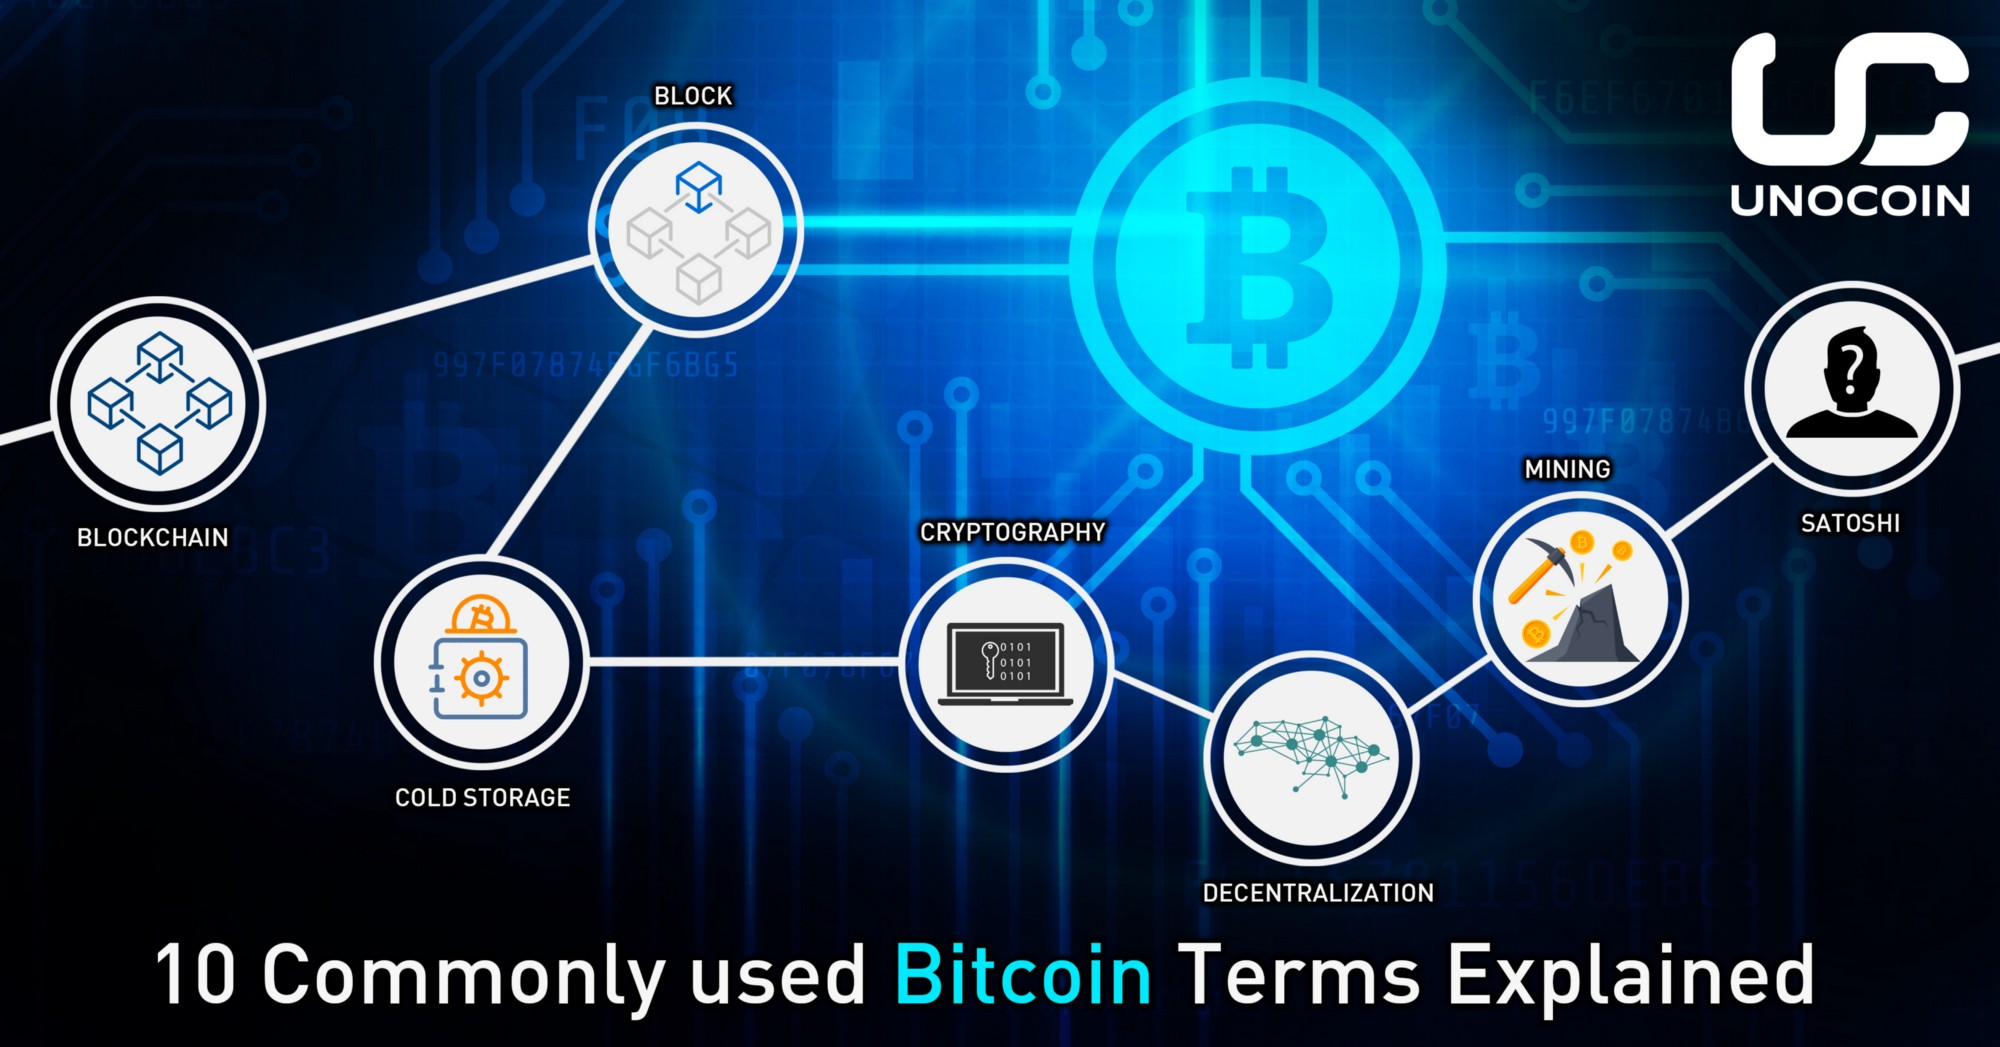 10 Commonly Used Bitcoin Terms Explained Unocoin